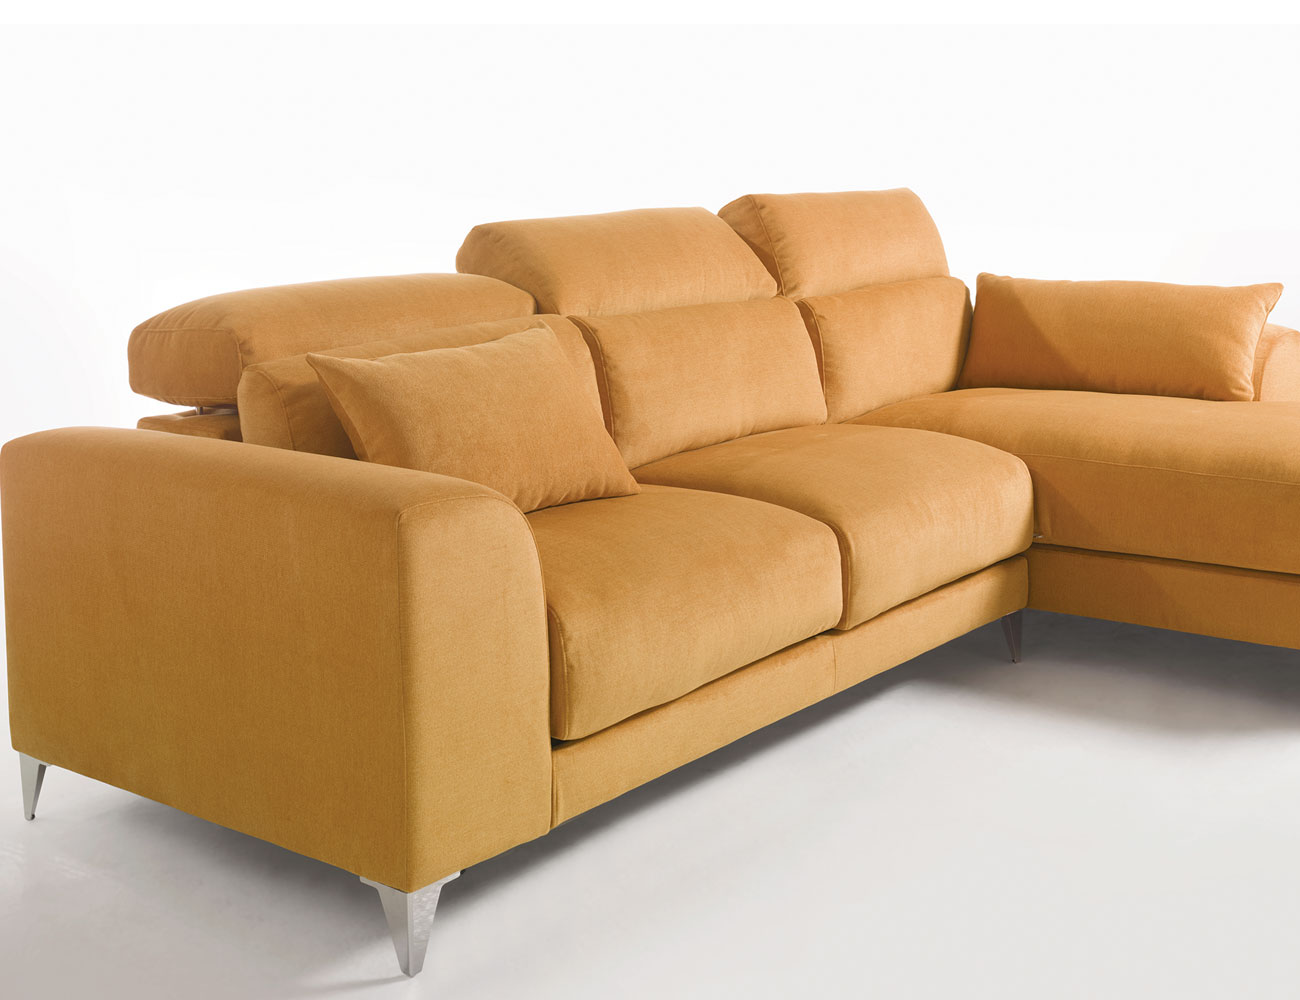 Sofa chaiselongue gran lujo decorativo patas altas amarillo 28